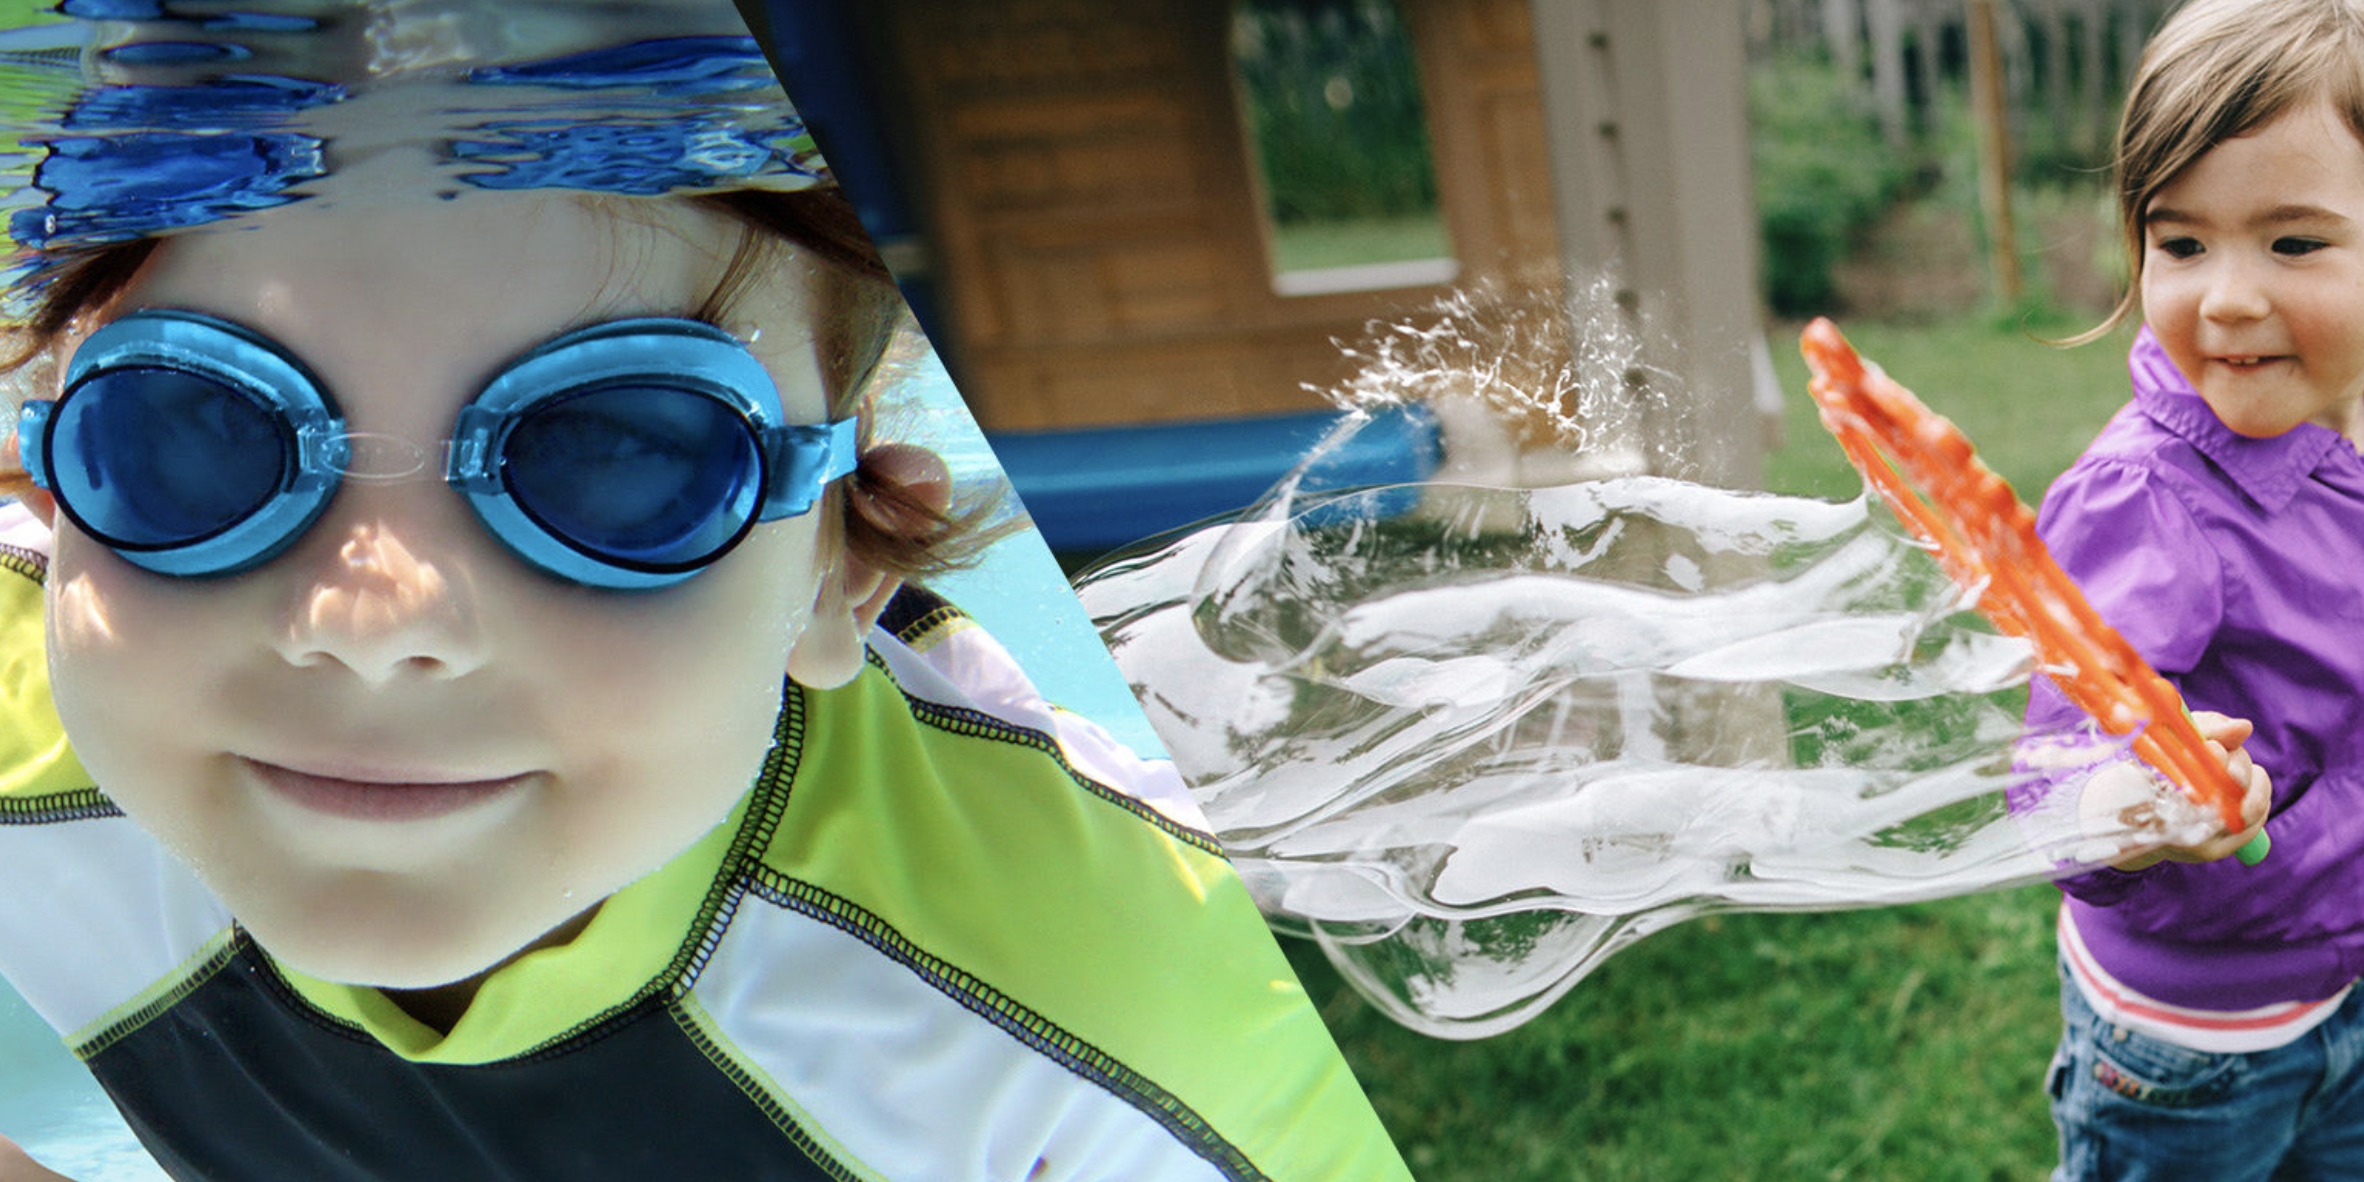 Adobe Photoshop Elements 2019 for Mac/PC is on sale, now $65 (Reg. $100)